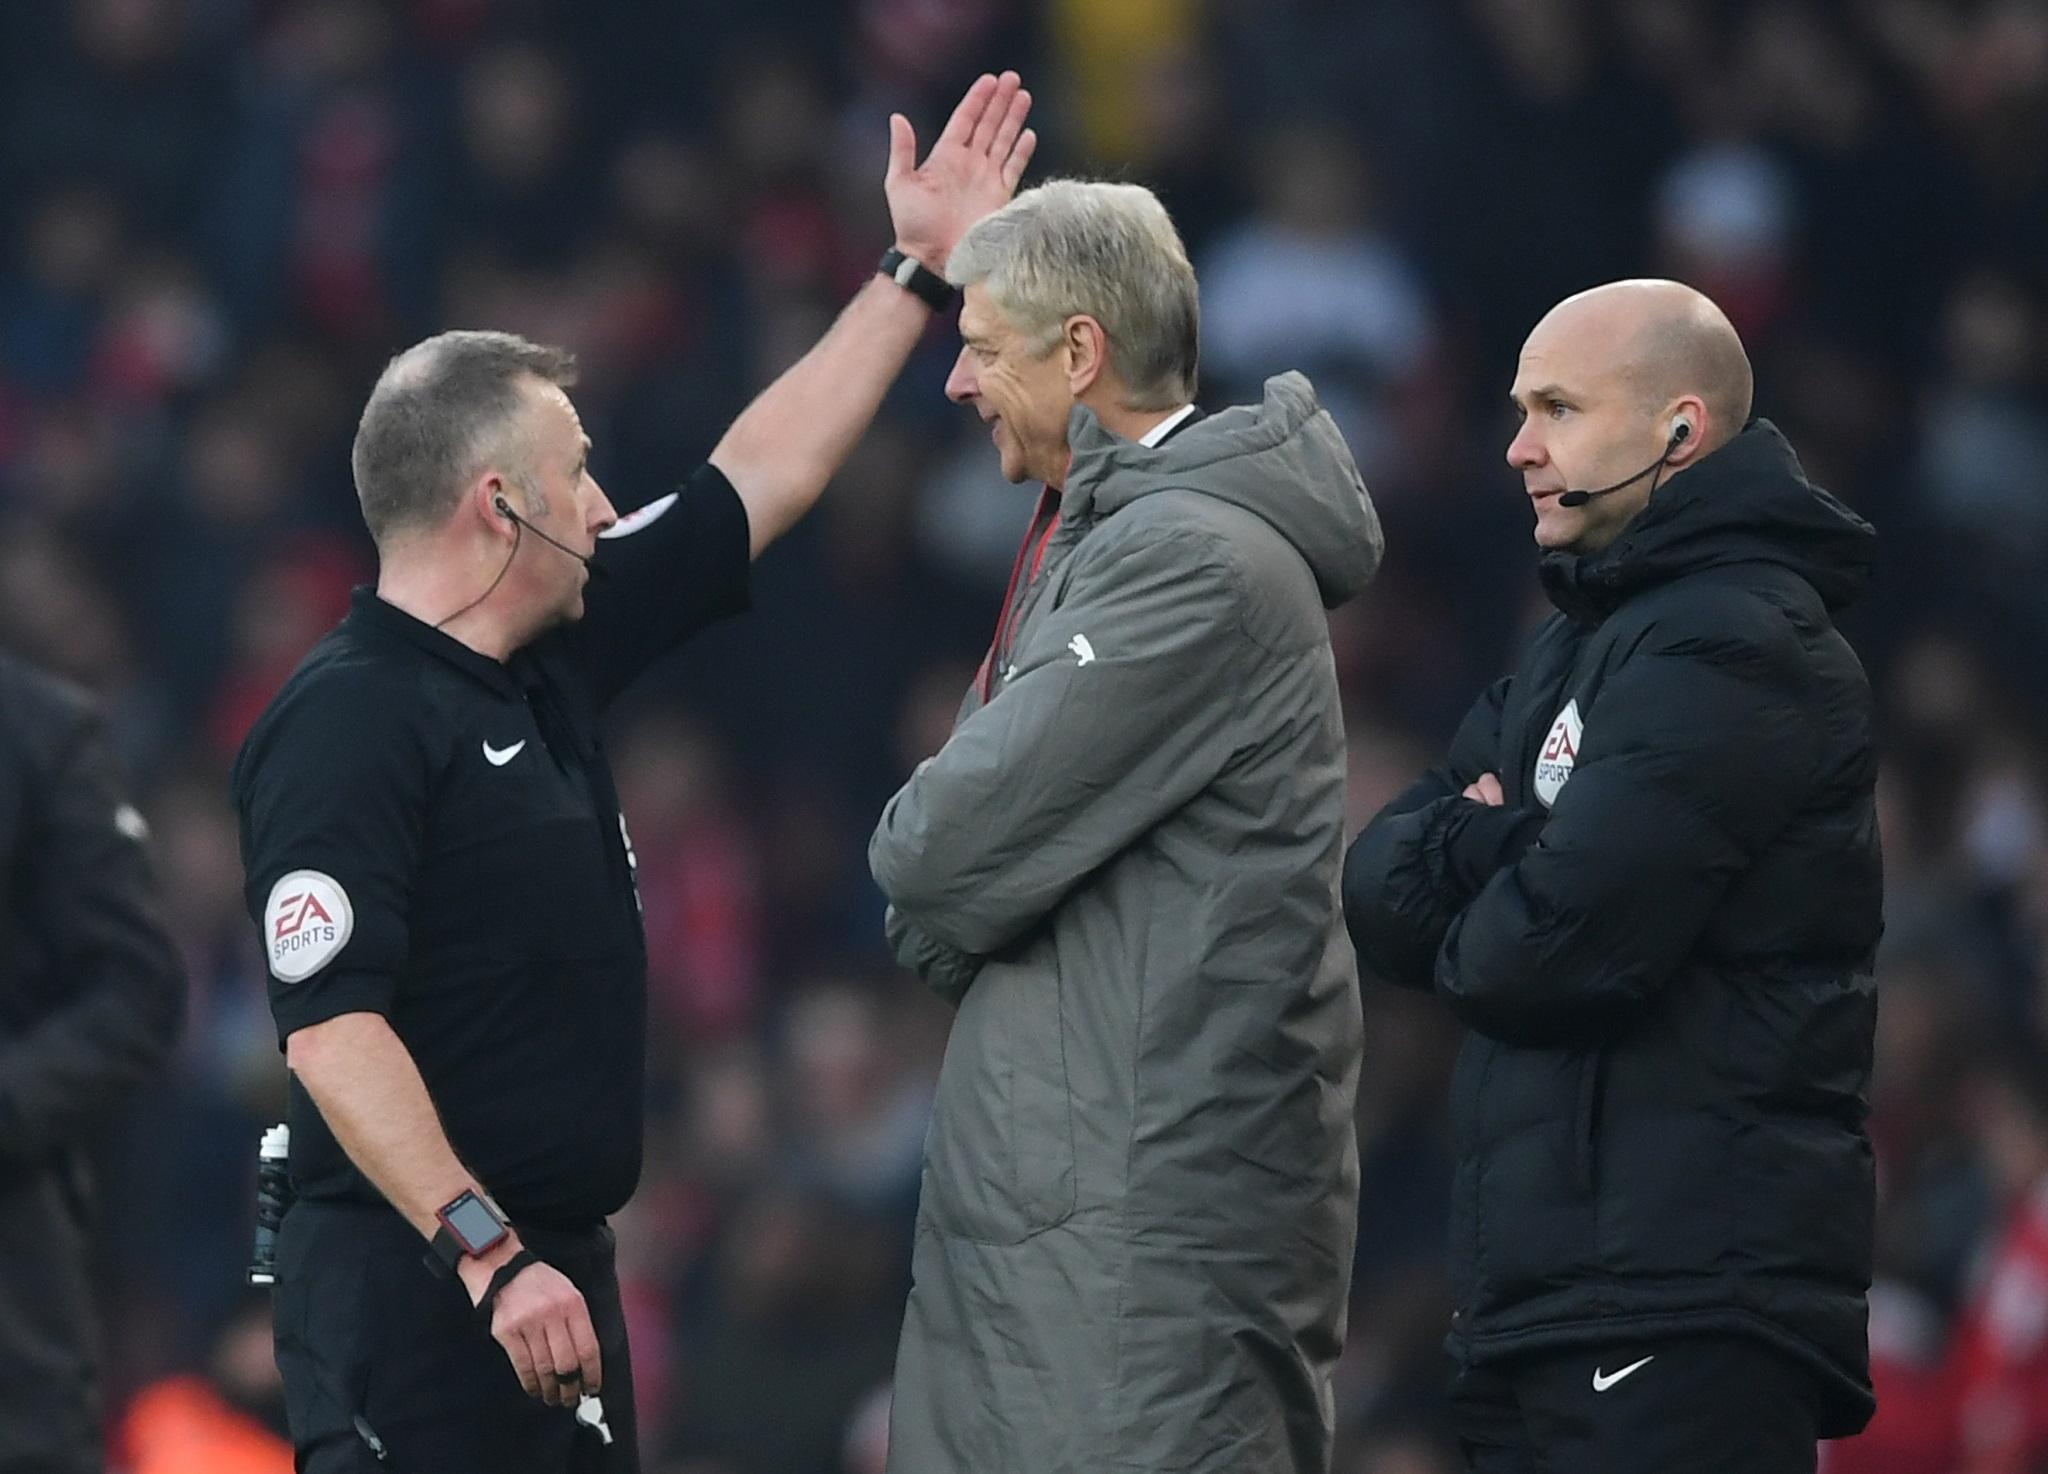 Arsene Wenger Facing Touchline Ban As Arsenal Manager Apologises For Pushing Fourth Official During Win Over Burnley The Independent The Independent